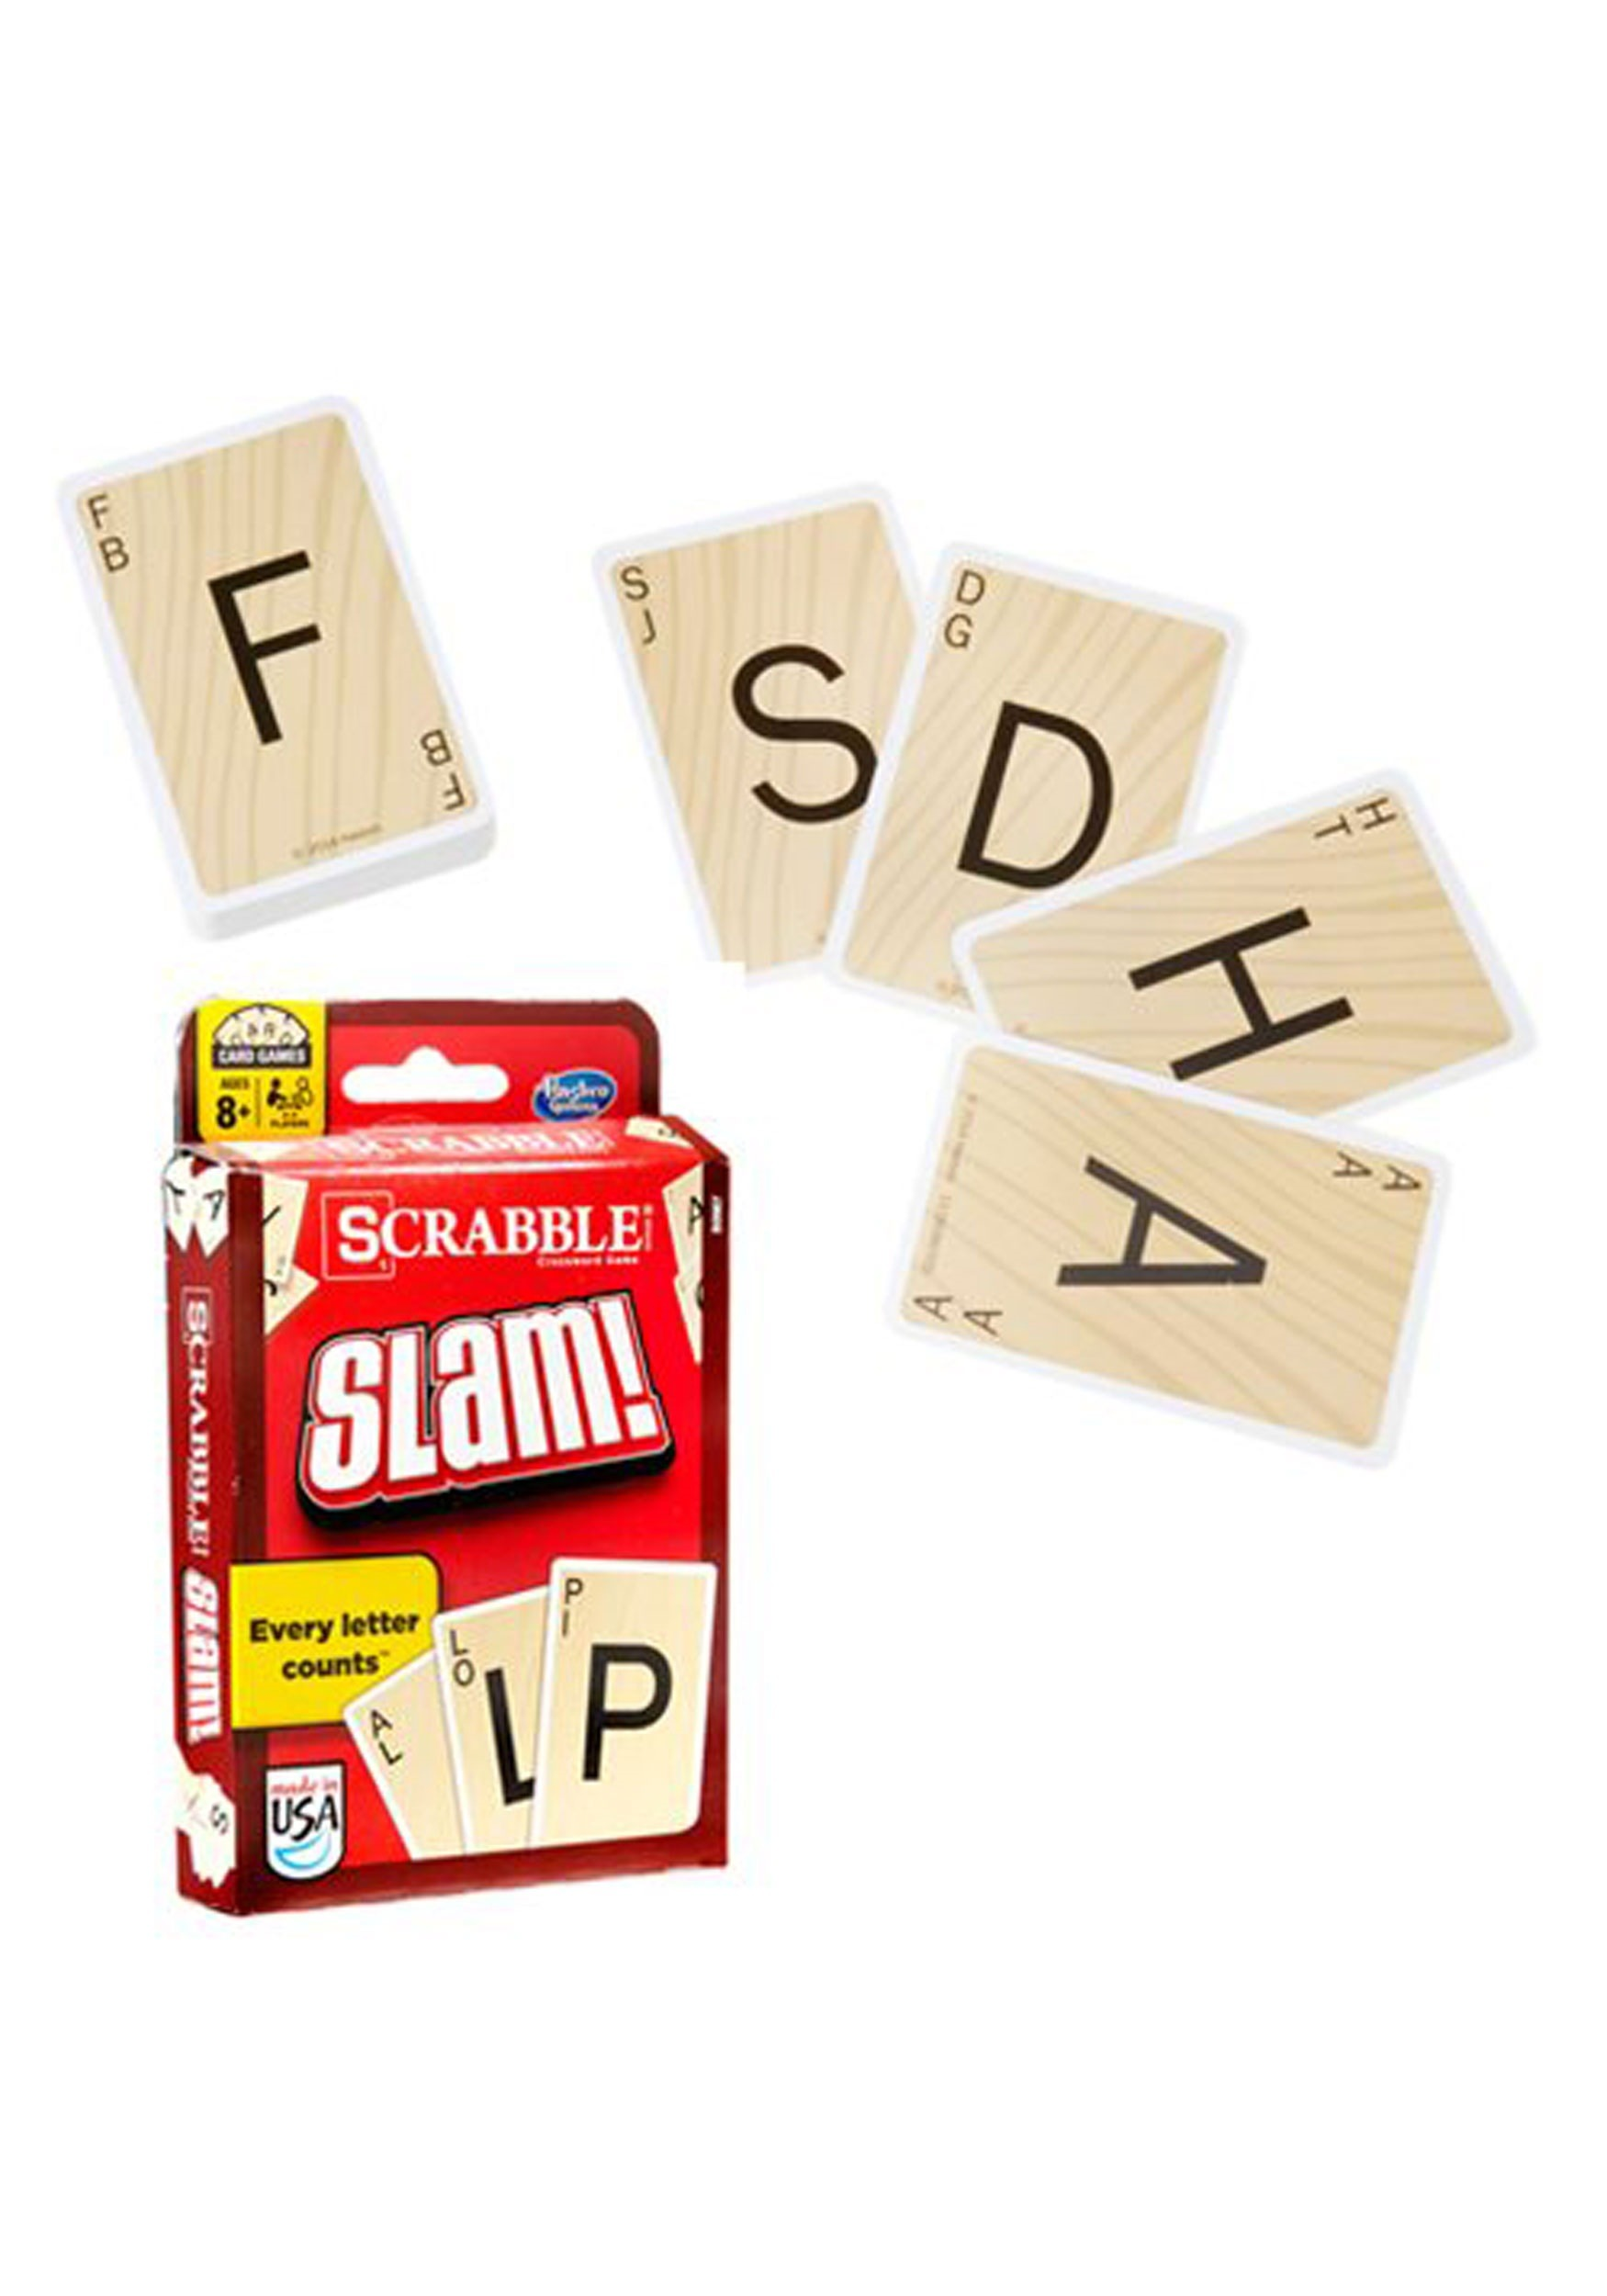 Scrabble Slam Hasbro Card Game